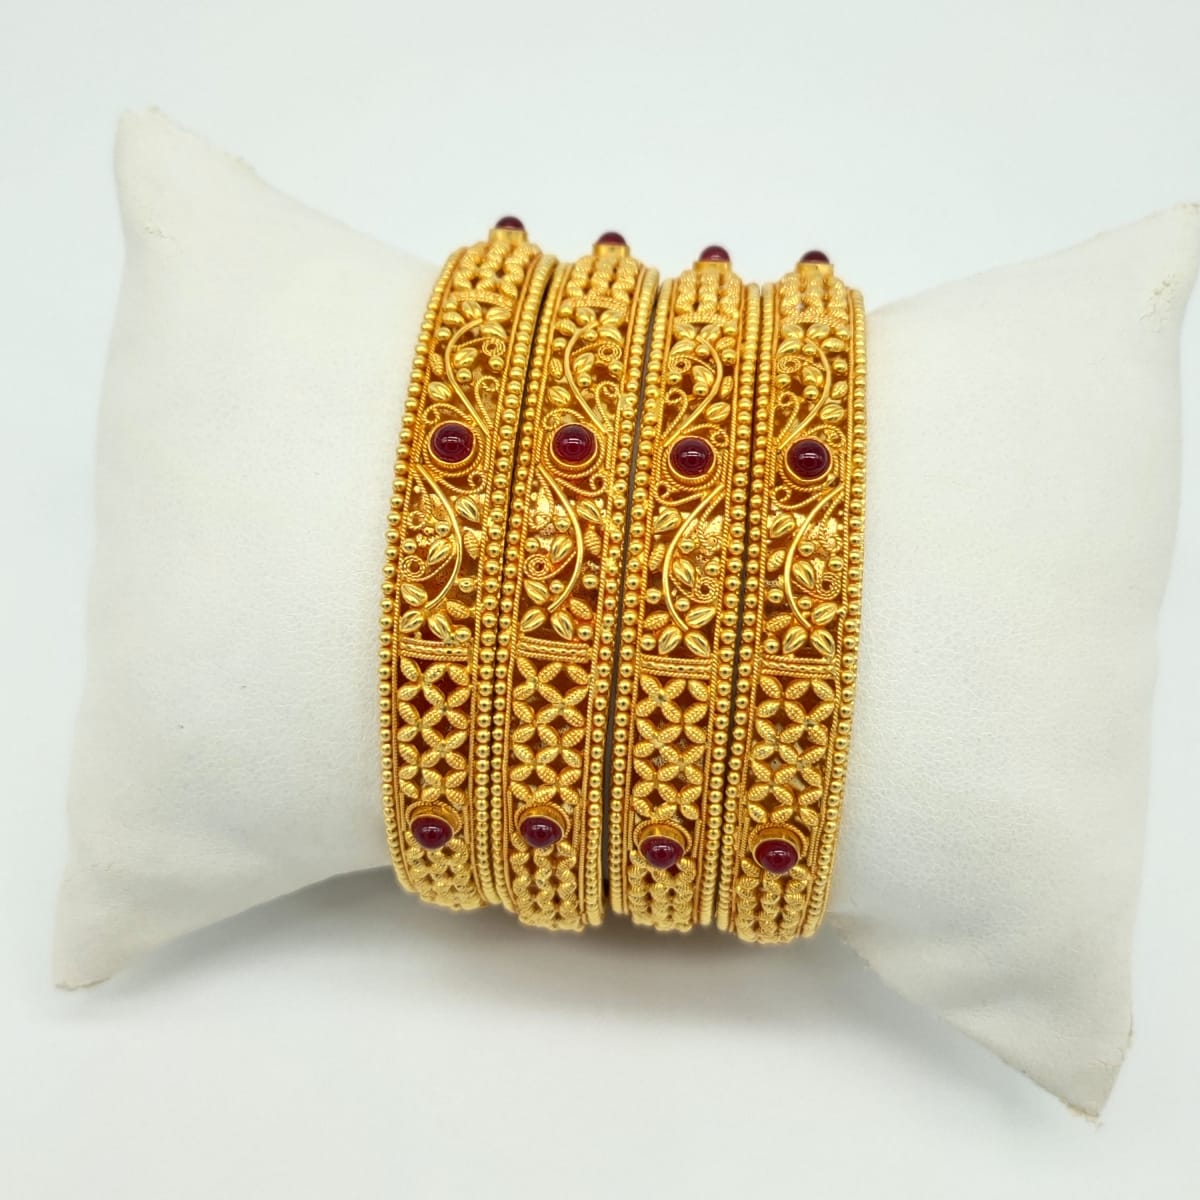 Antique Gold Bangles Simple Design - 4pcs